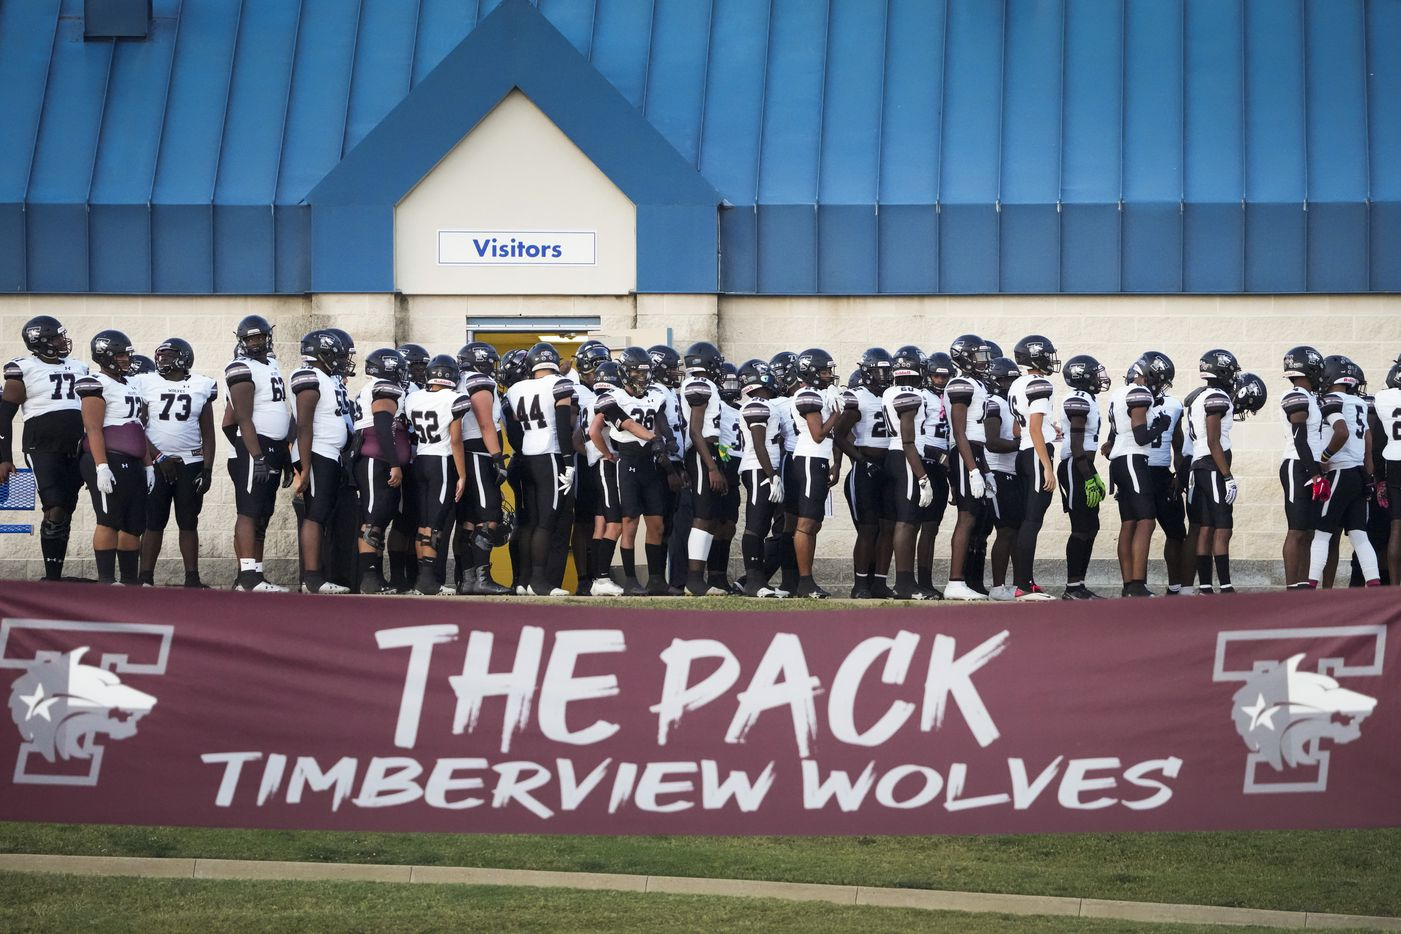 Mansfield Timberview wait to take the field before facing Waco University in a high school football game at Waco ISD Stadium on Friday, Oct. 8, 2021, in Waco, Texas.